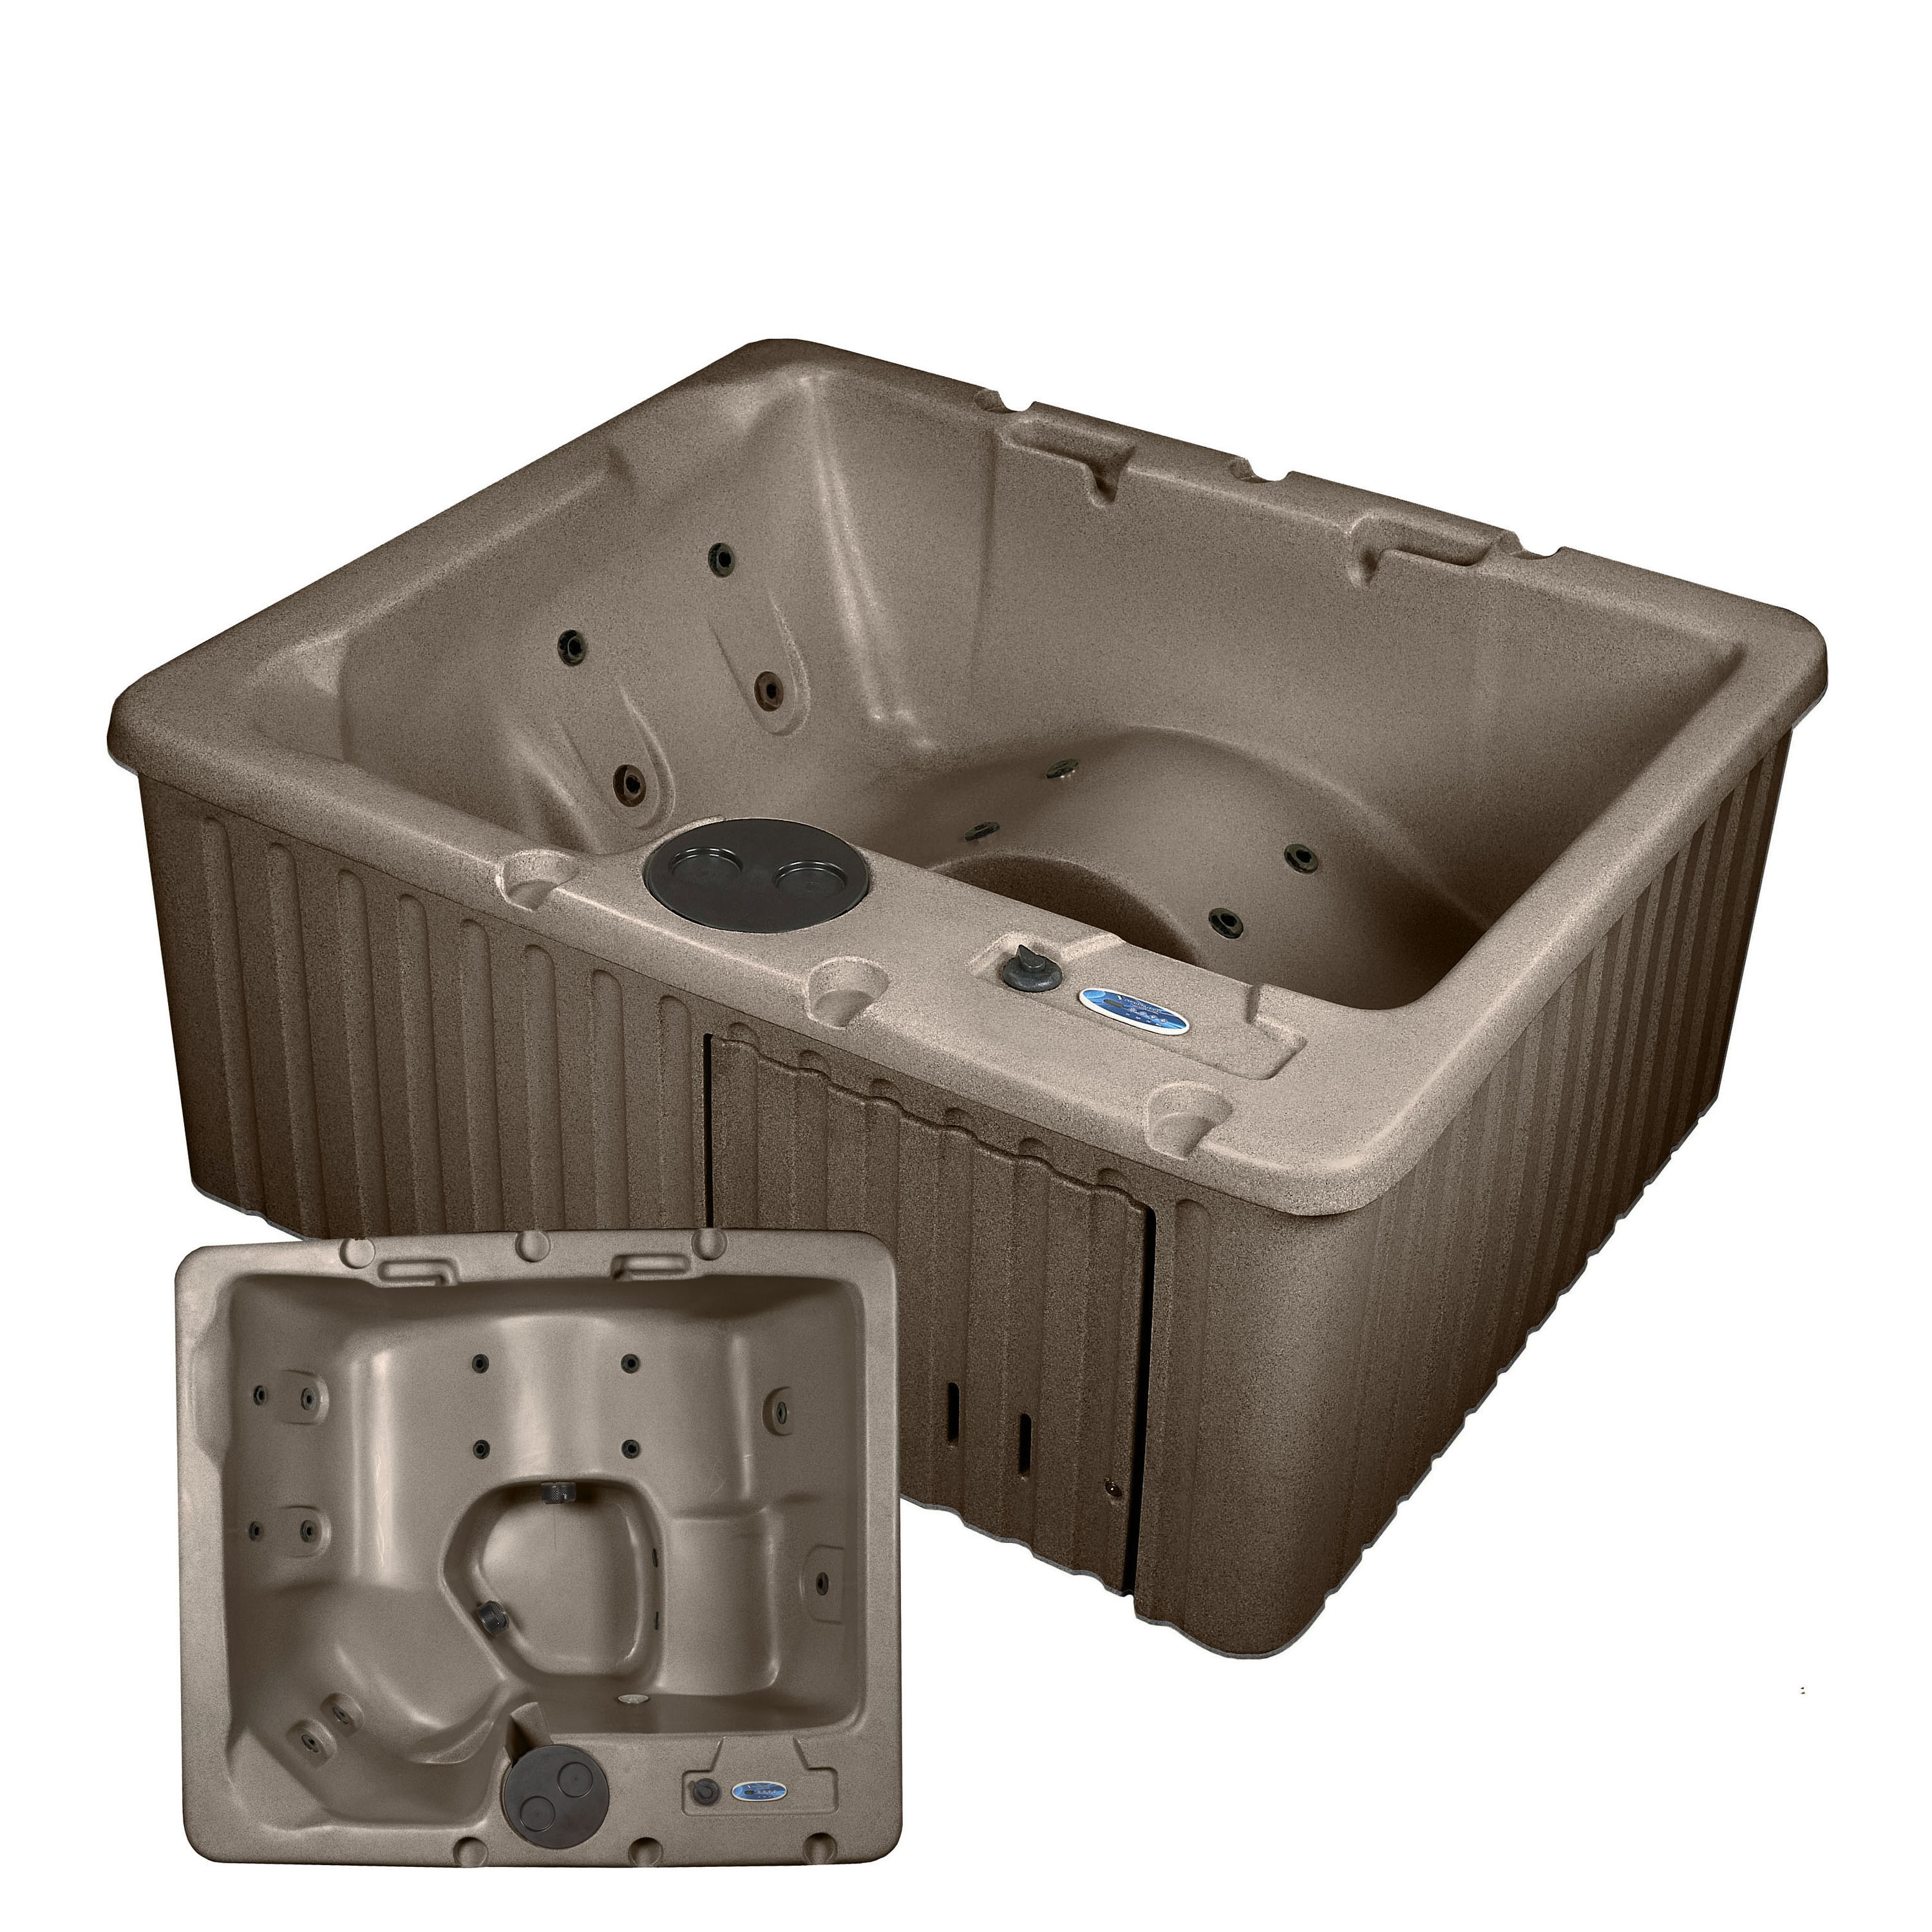 Direct Pricing: Raleigh Hot Tub Blowout Below Factory Direct Pricing